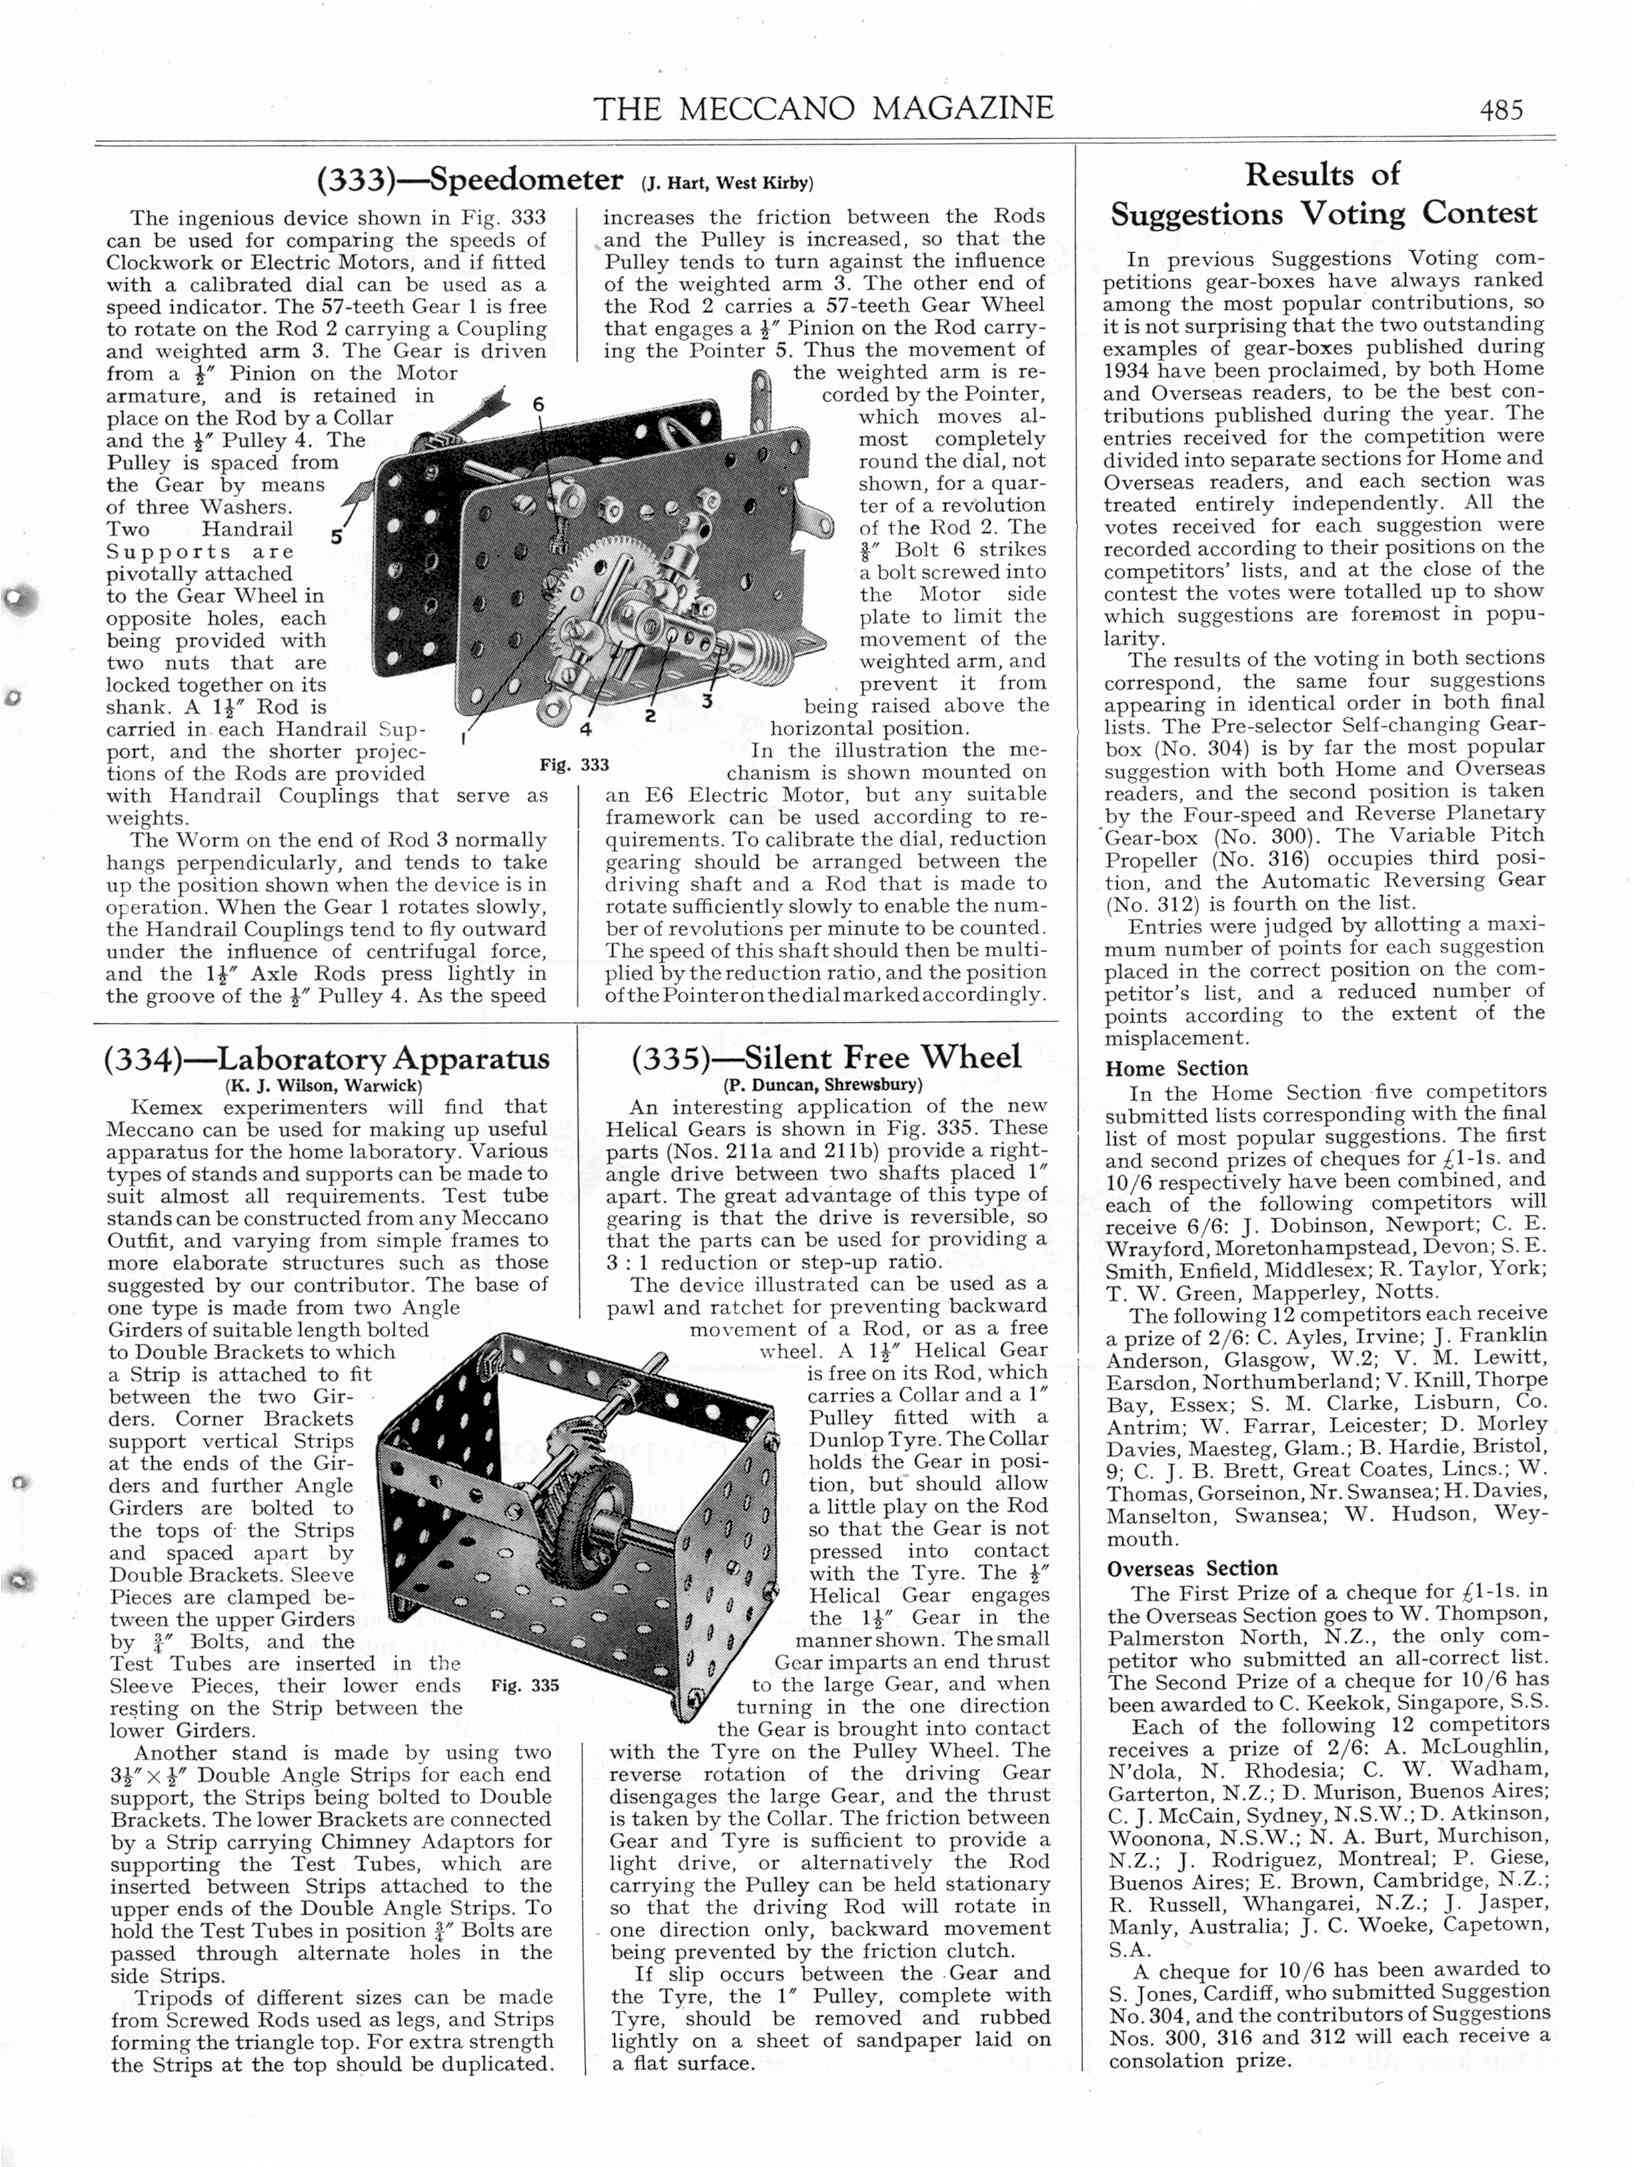 MM Aug 1935 Page 0485